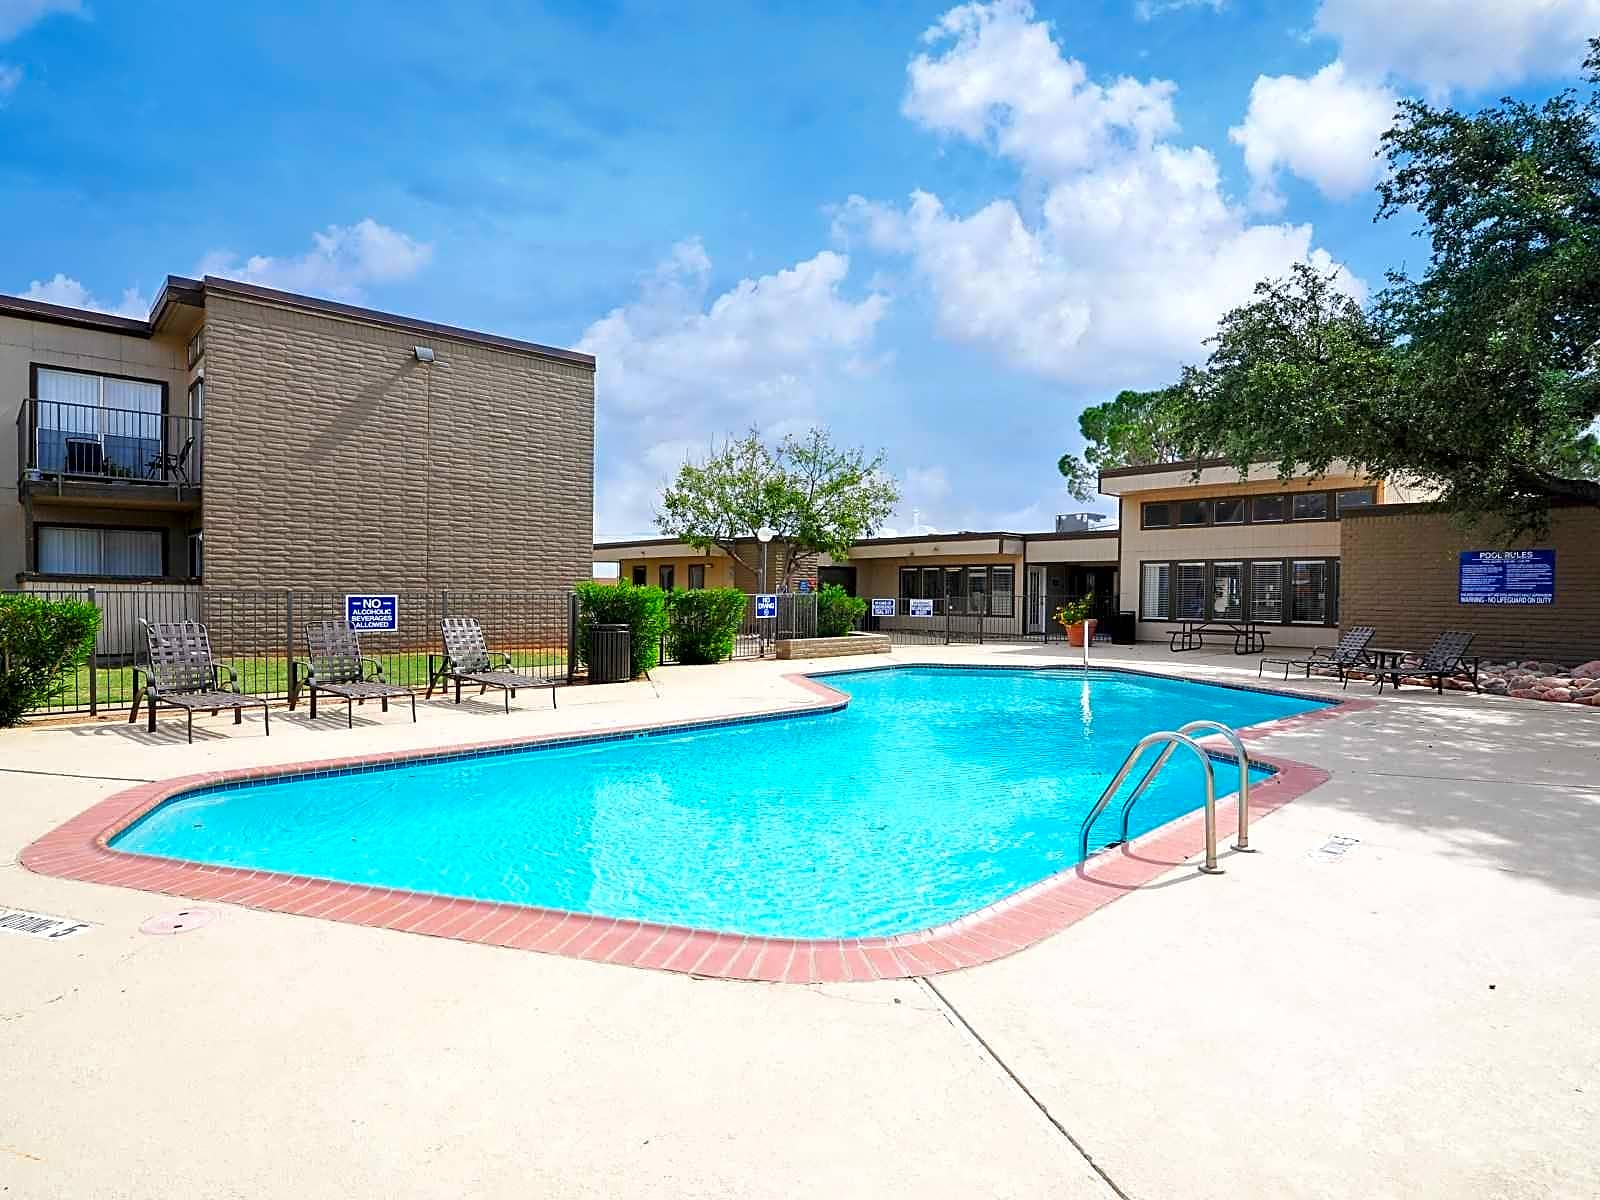 Apartments Near UTPB Brookview for The University of Texas of the Permian Basin Students in Odessa, TX